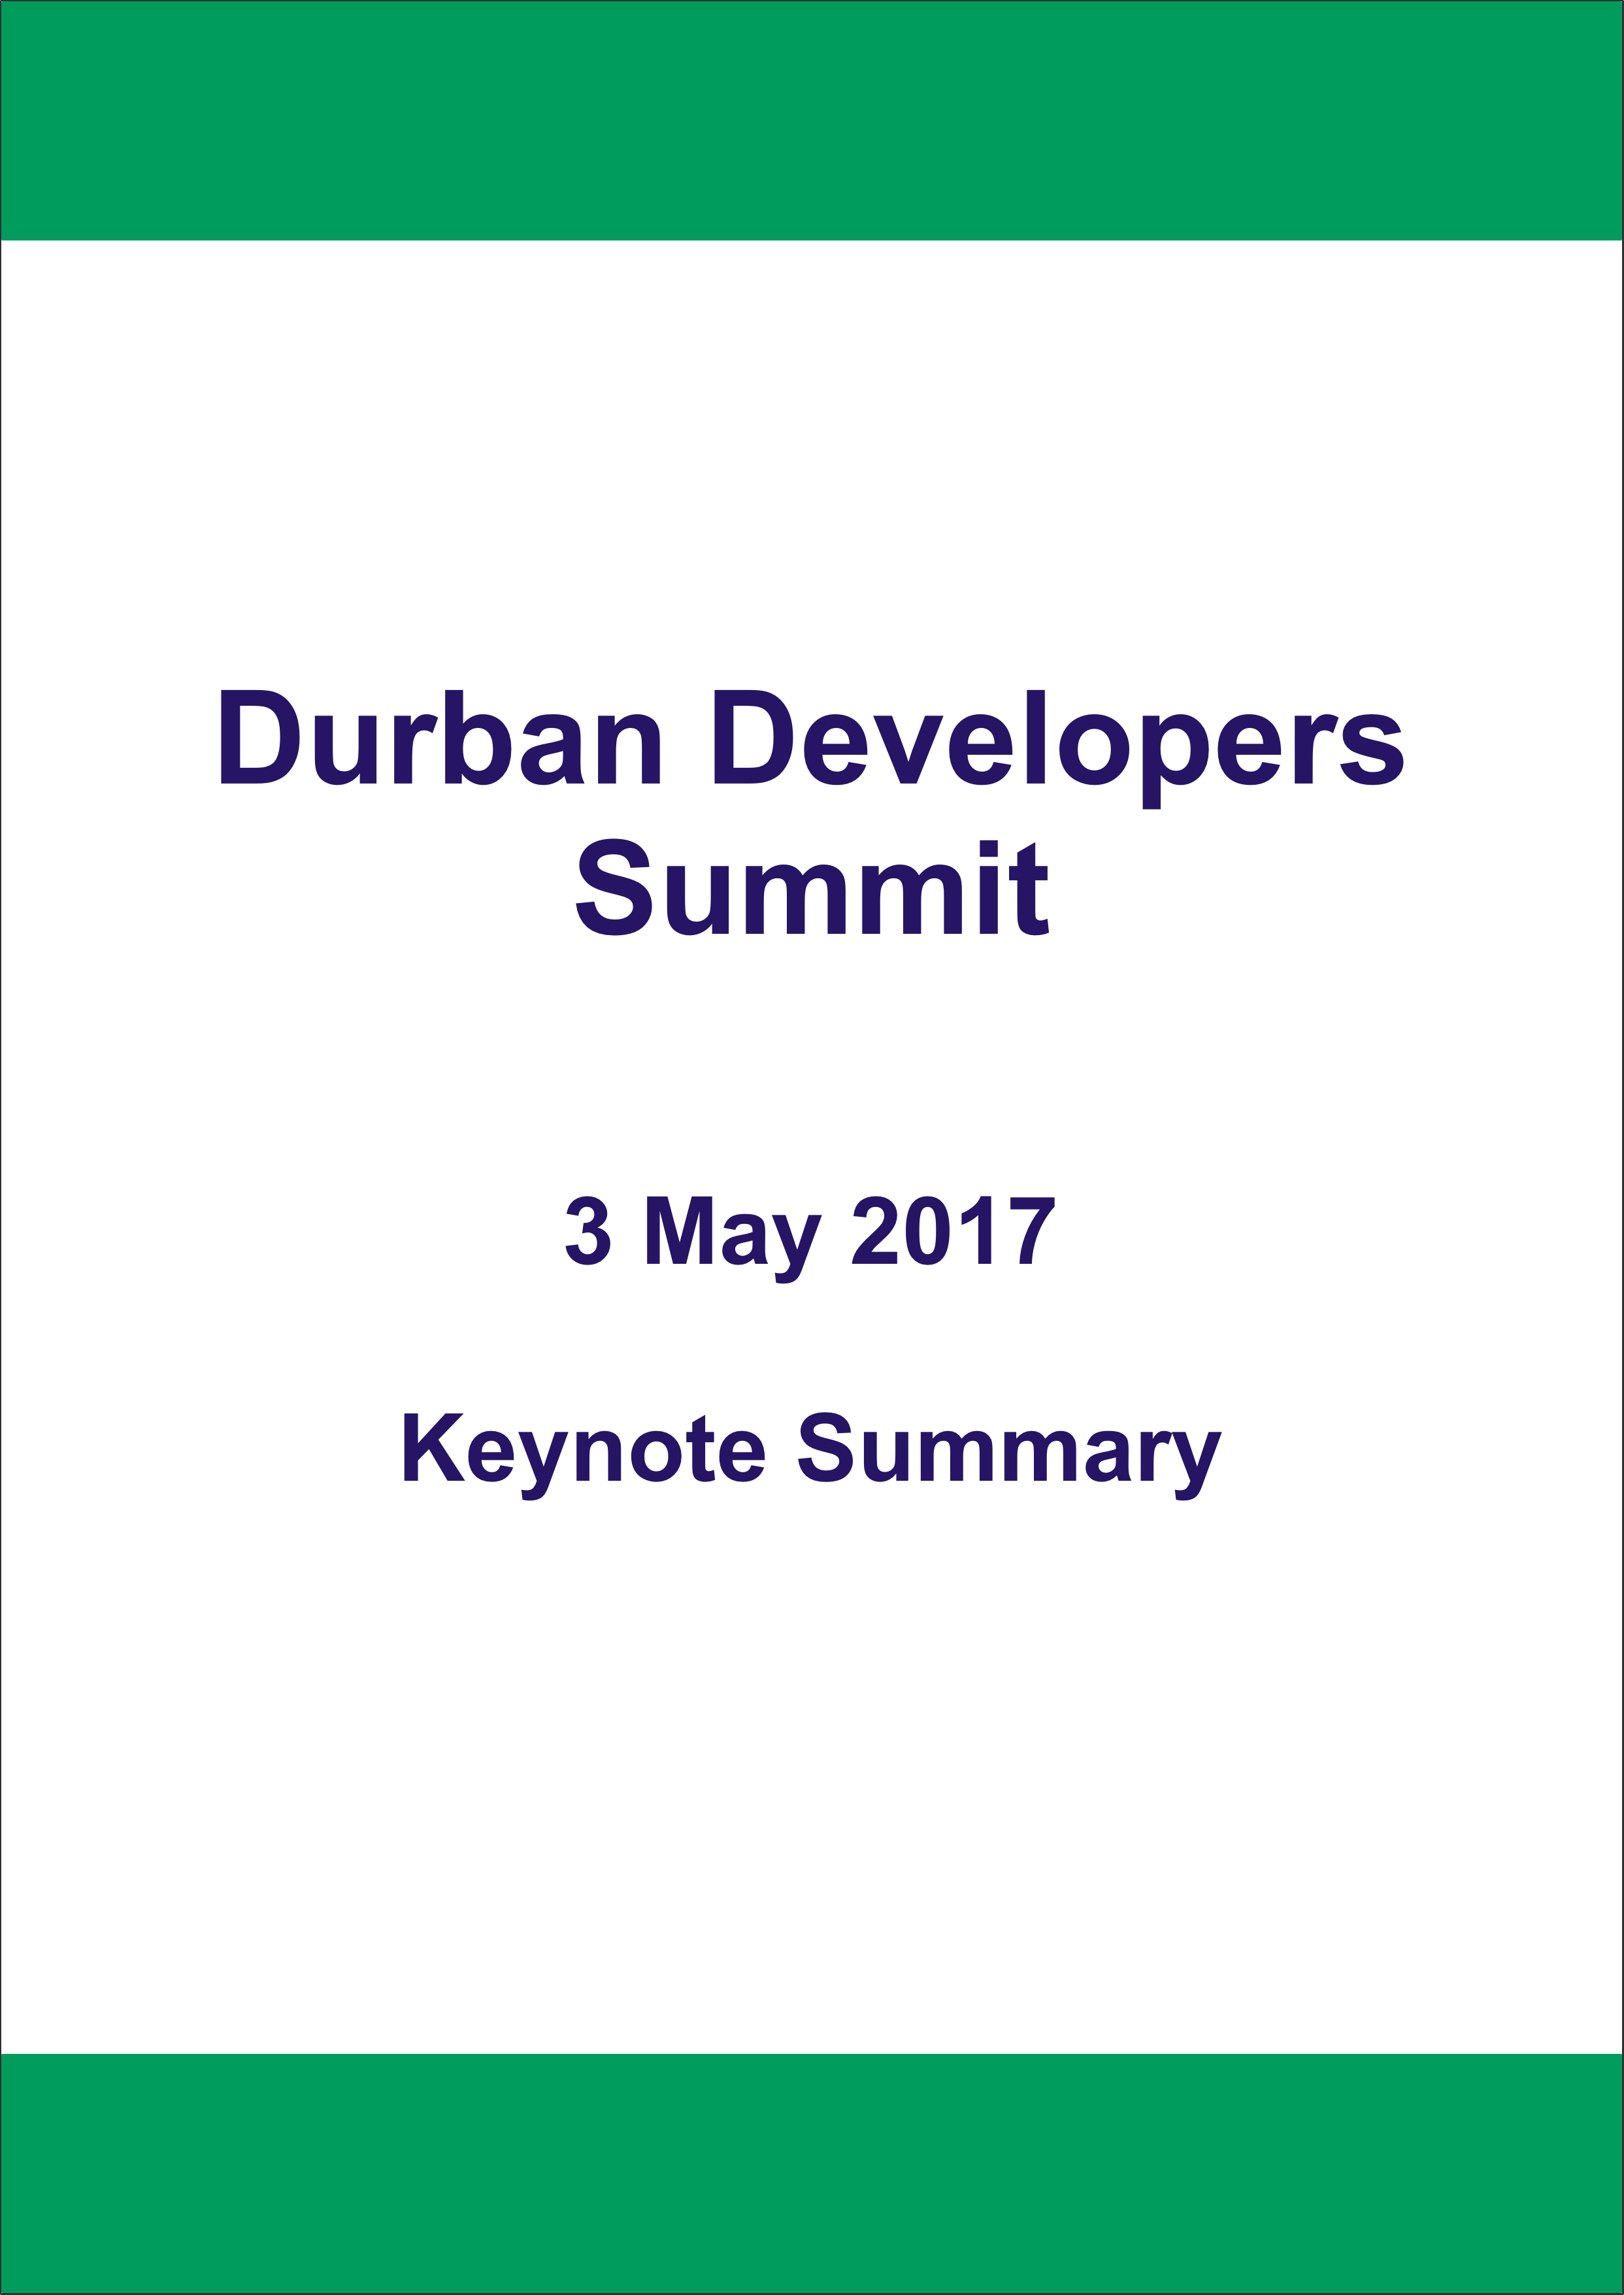 Durban Developers Summit 2017